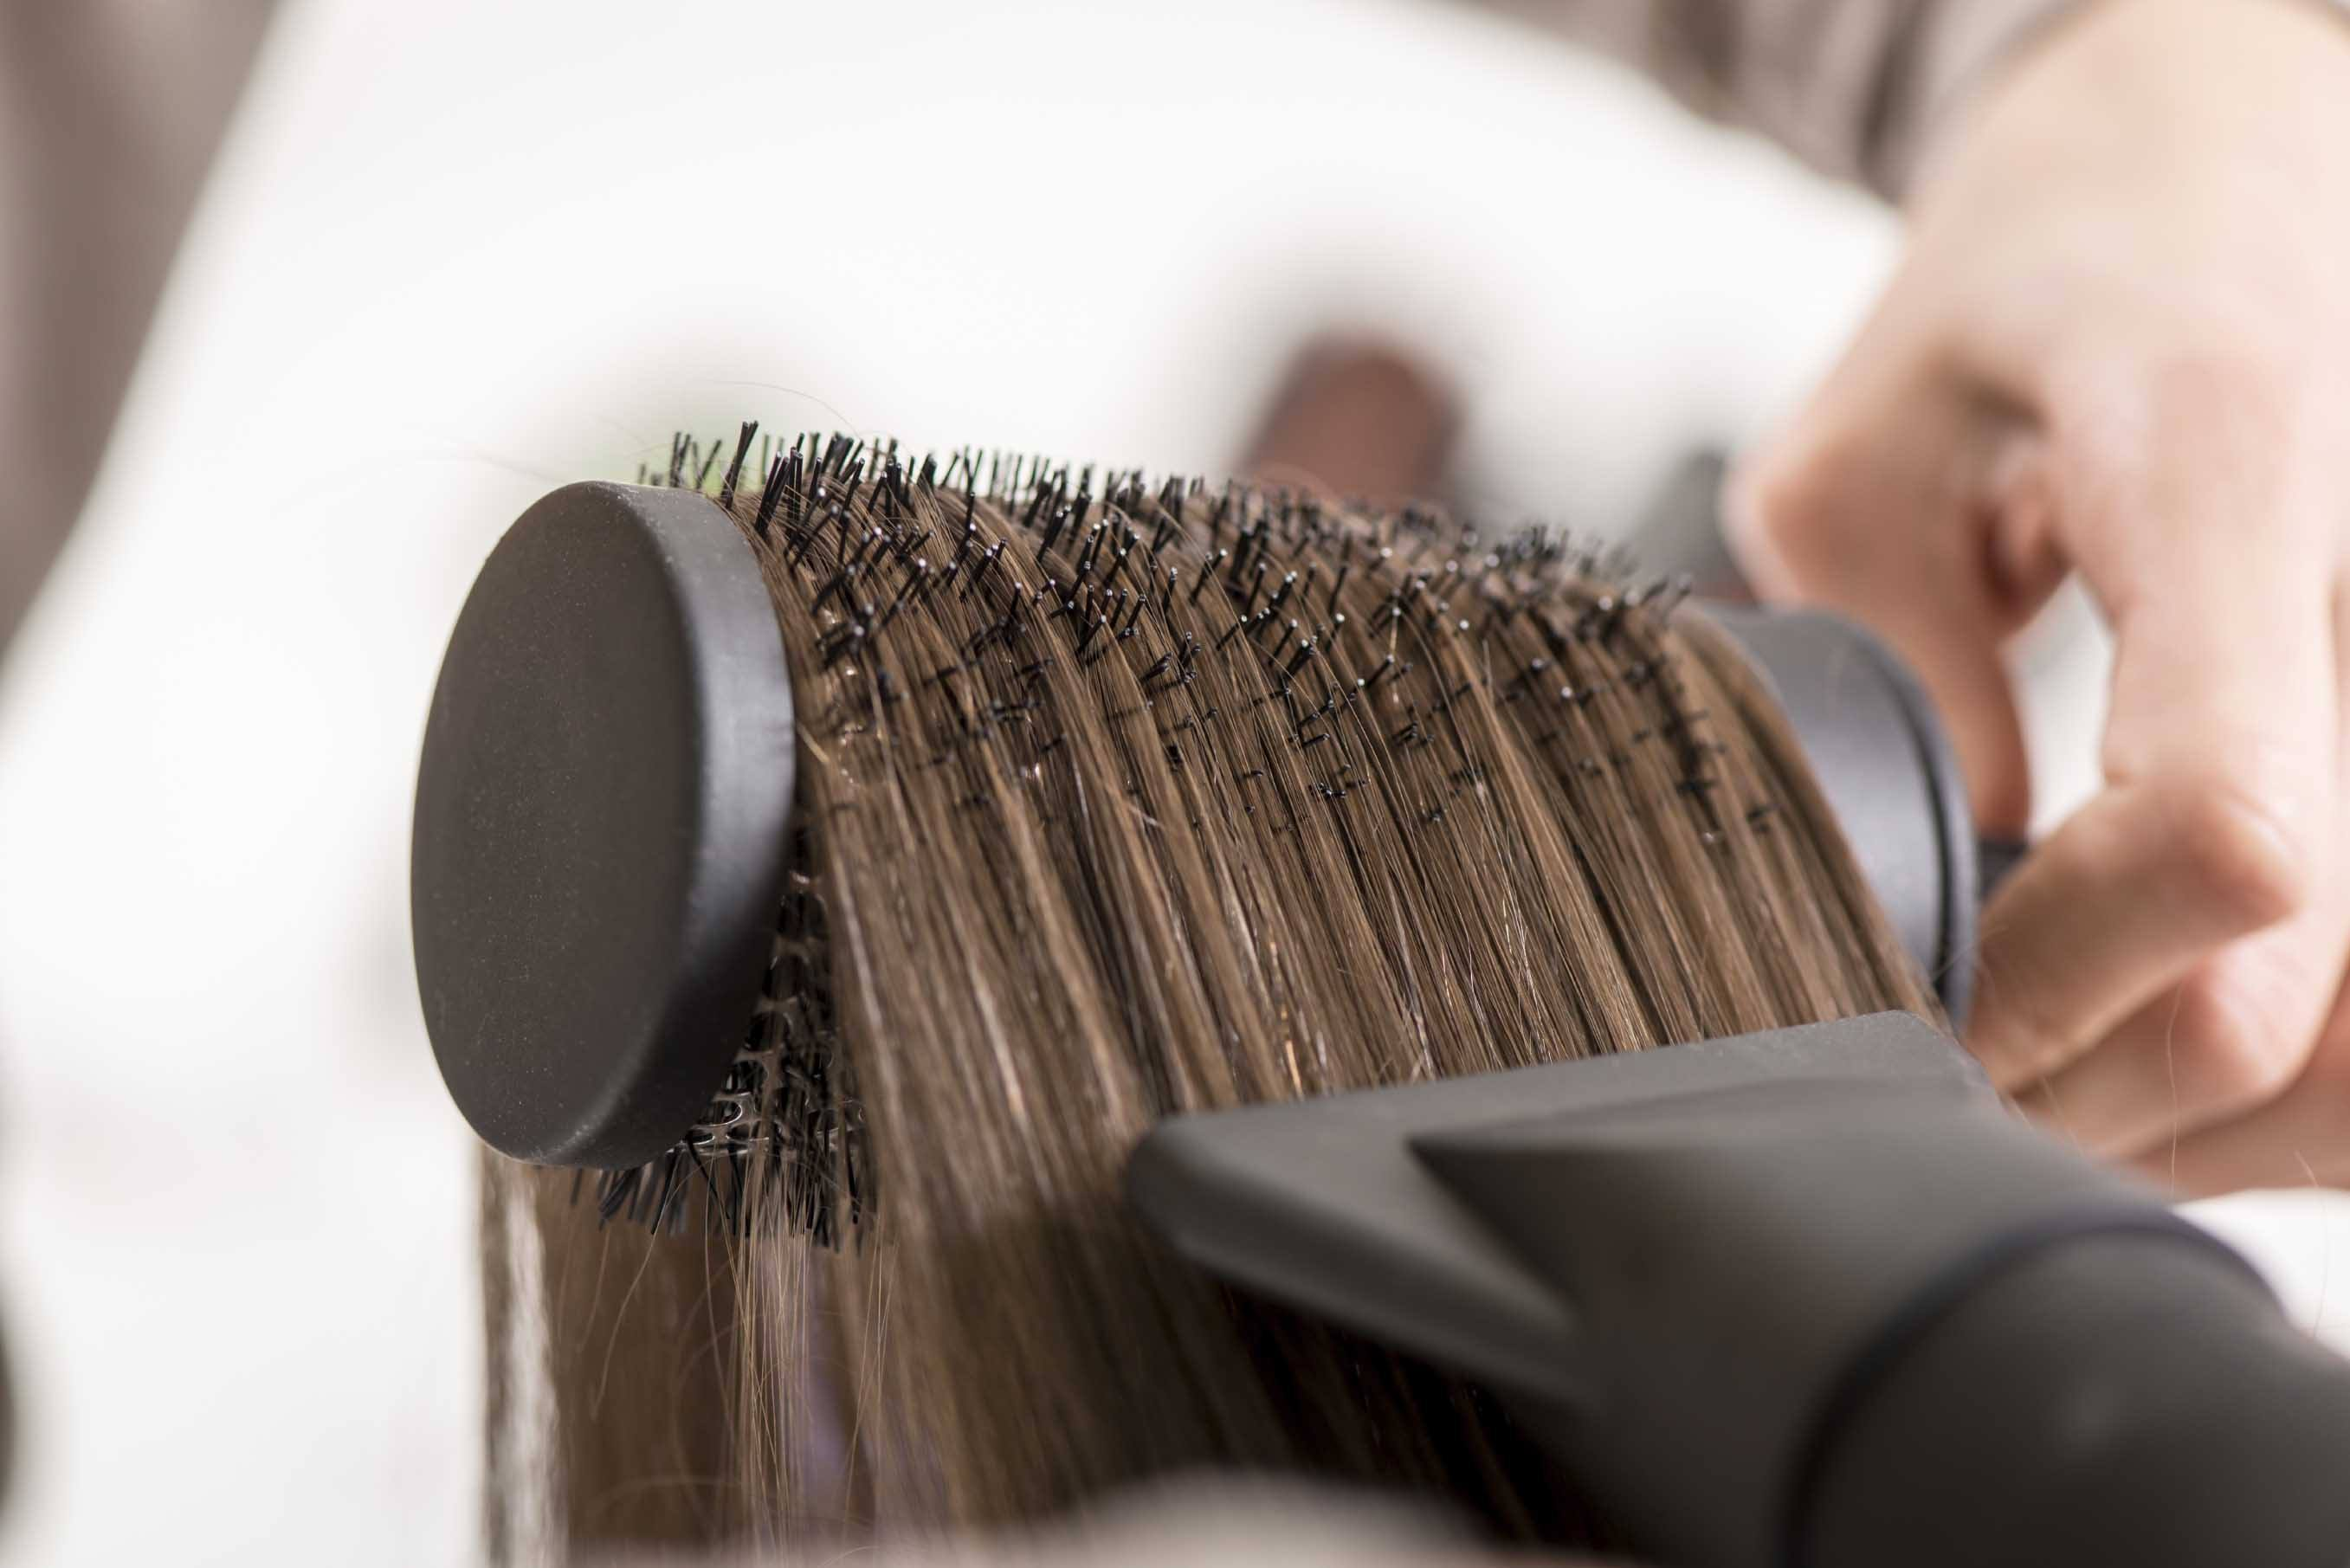 Close-up of a drying brown hair with hair dryer and round brush